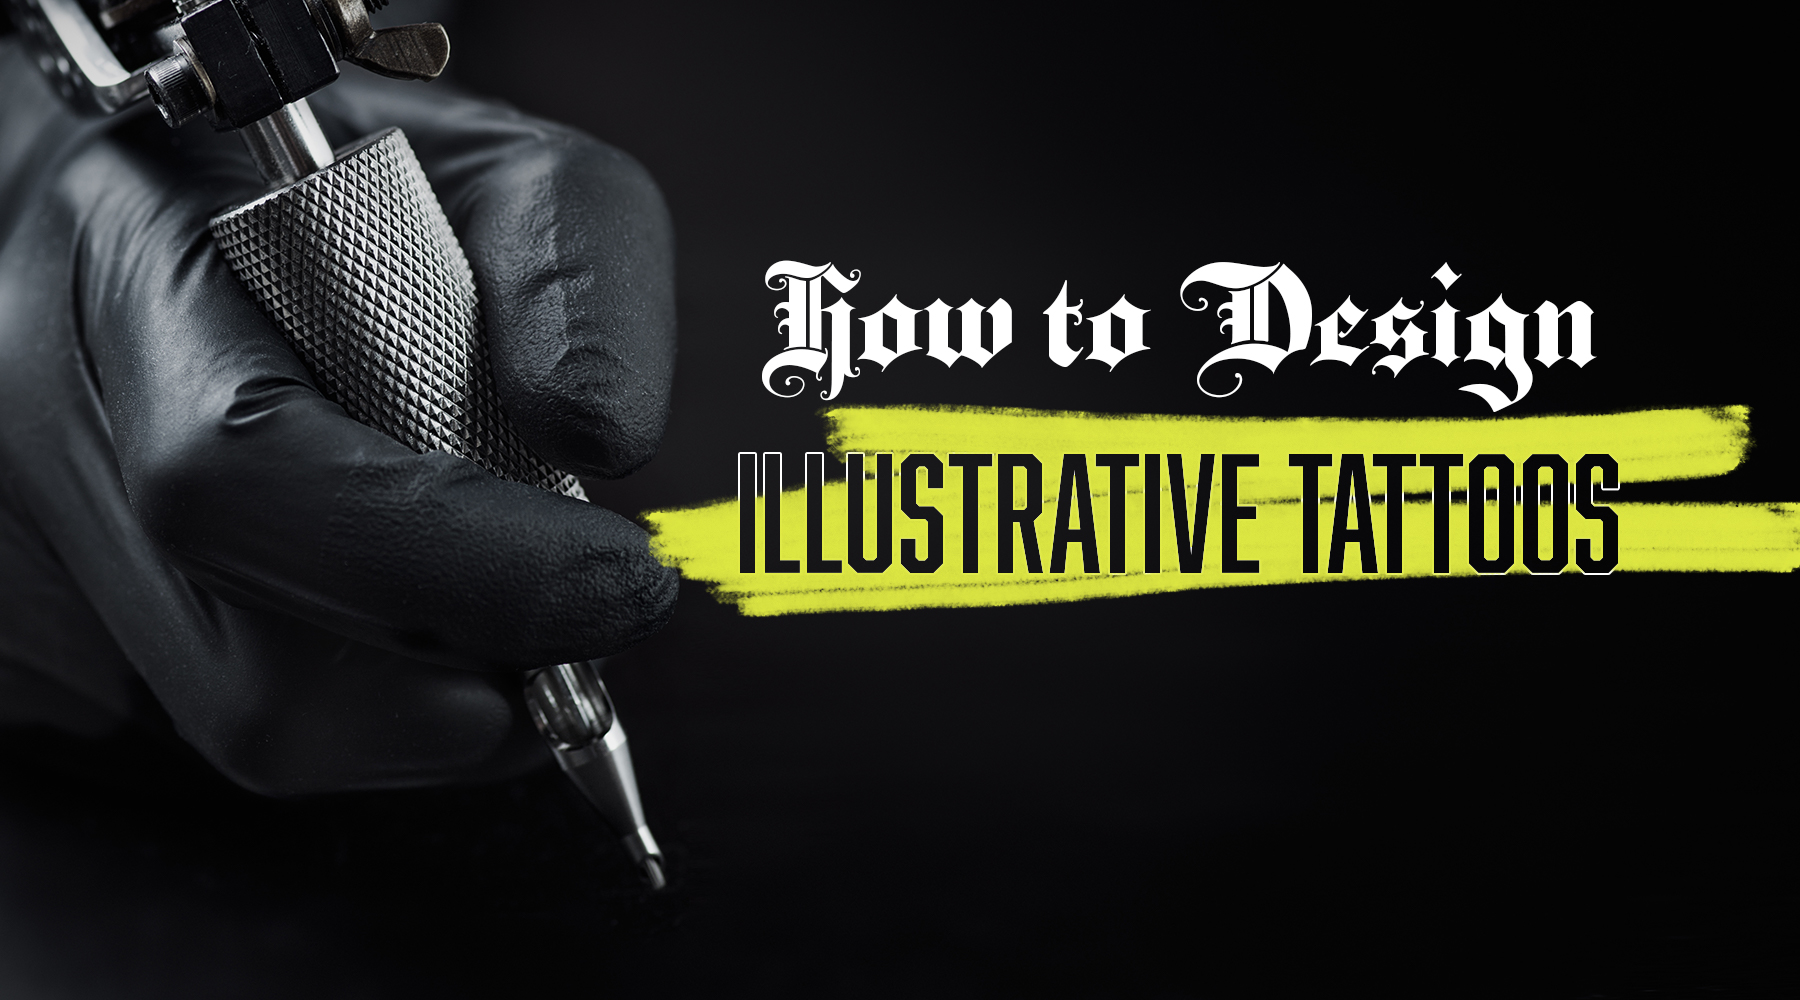 If there's one tattoo style that's used more than any other, Illustrative could be it. It's almost impossible to design any tattoo without using Illustrative elements – they are illustrations, after a...